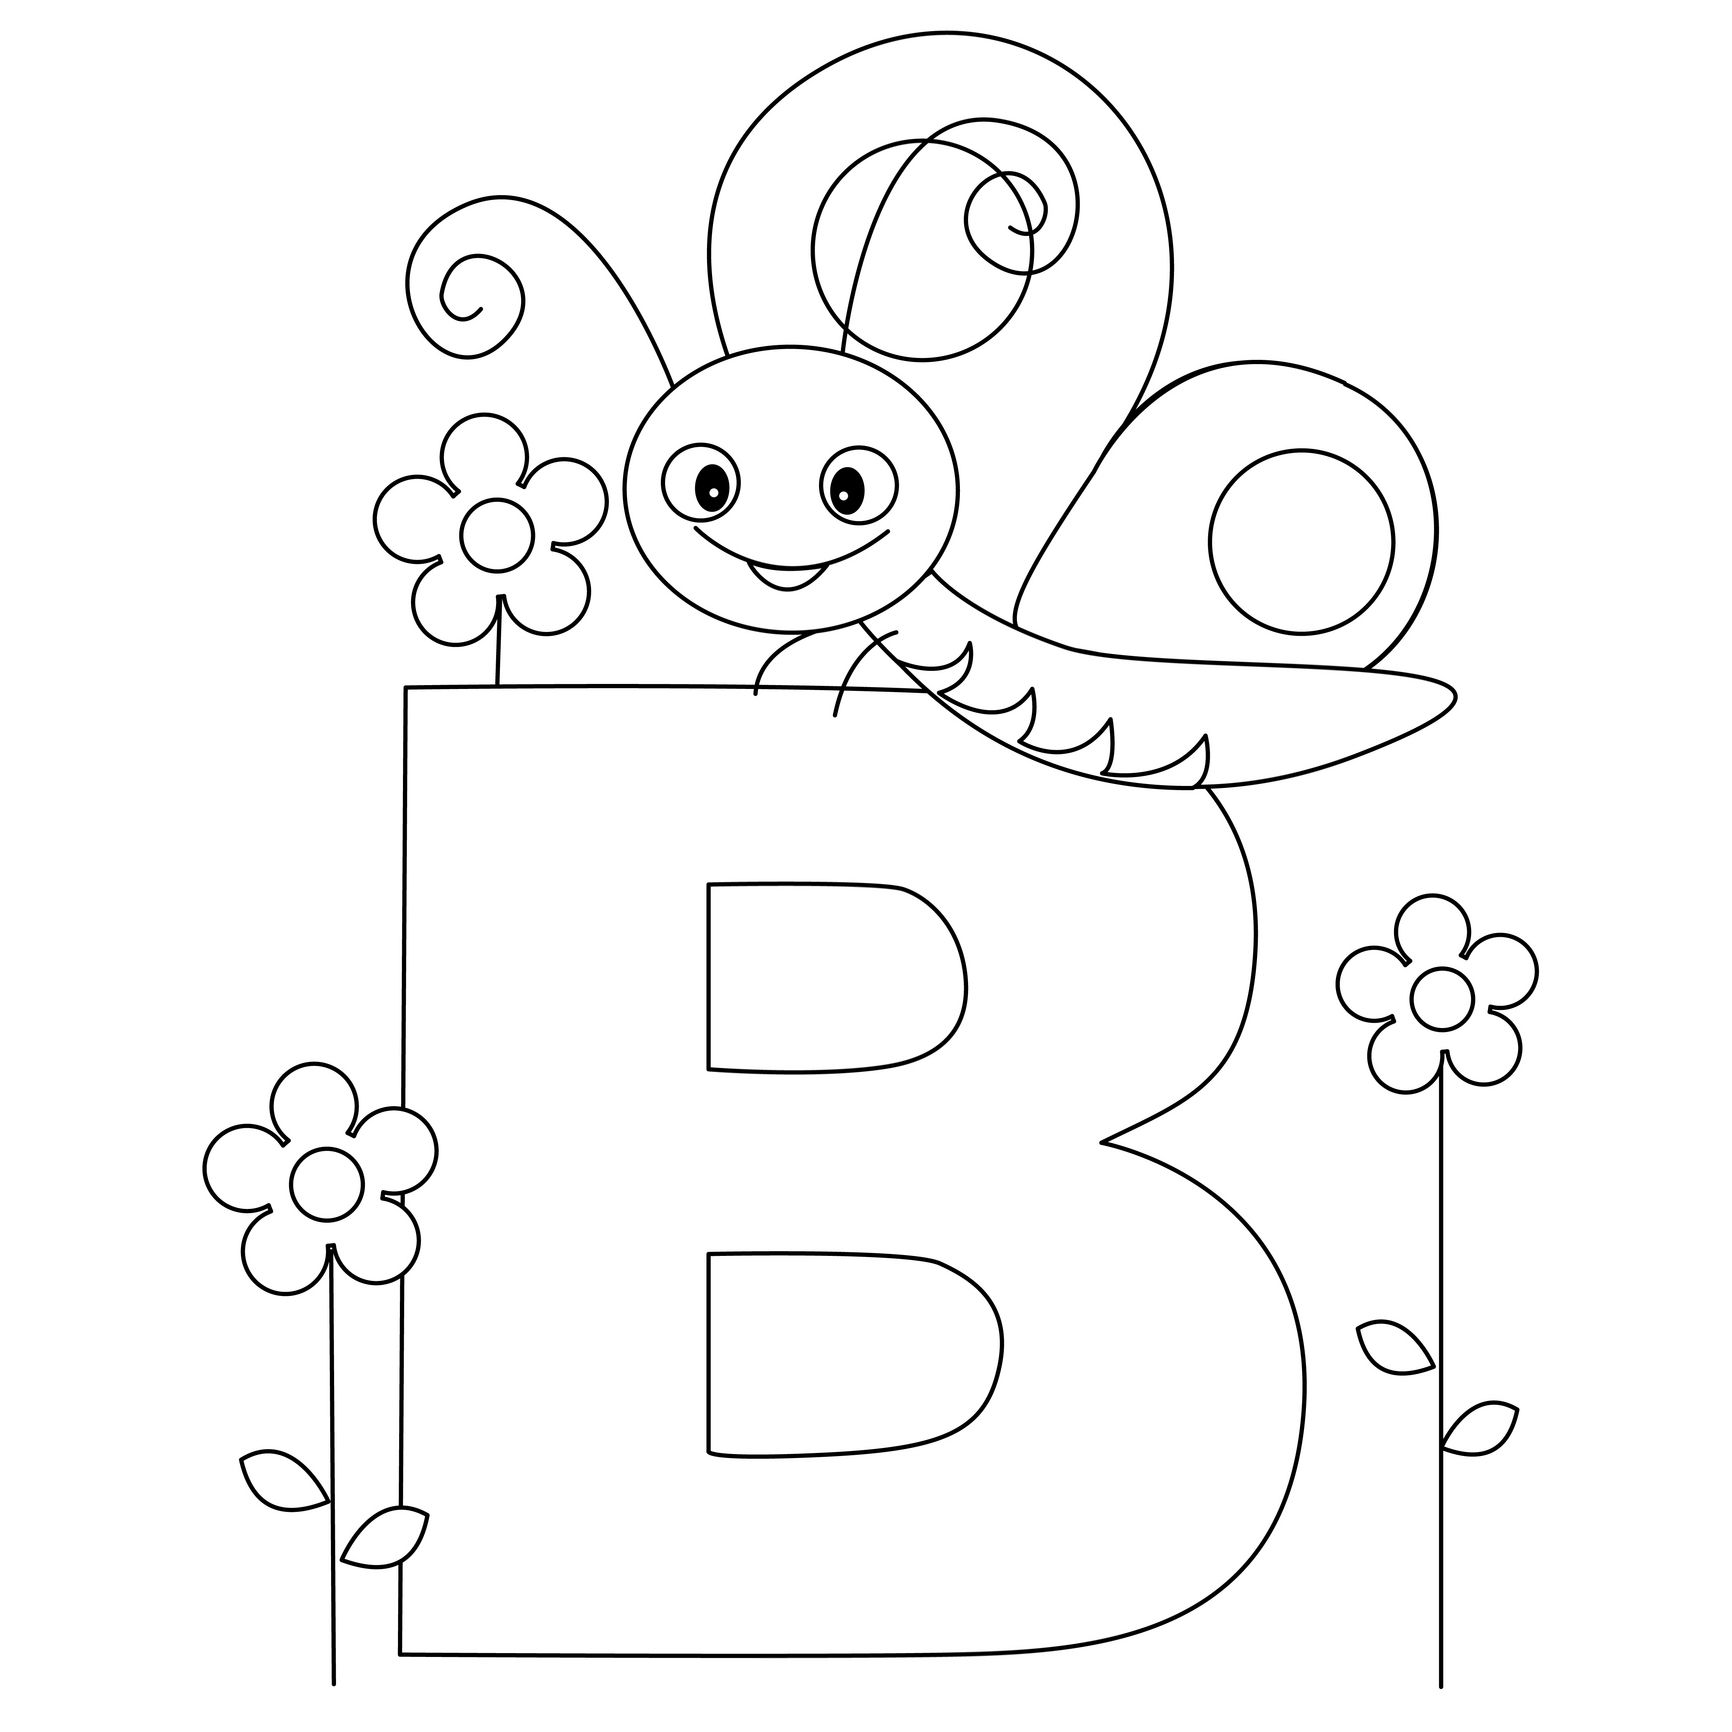 Animal Alphabet Letter B Is For Butterfly Letter B Coloring Pages Bug Coloring Pages Kindergarten Coloring Pages